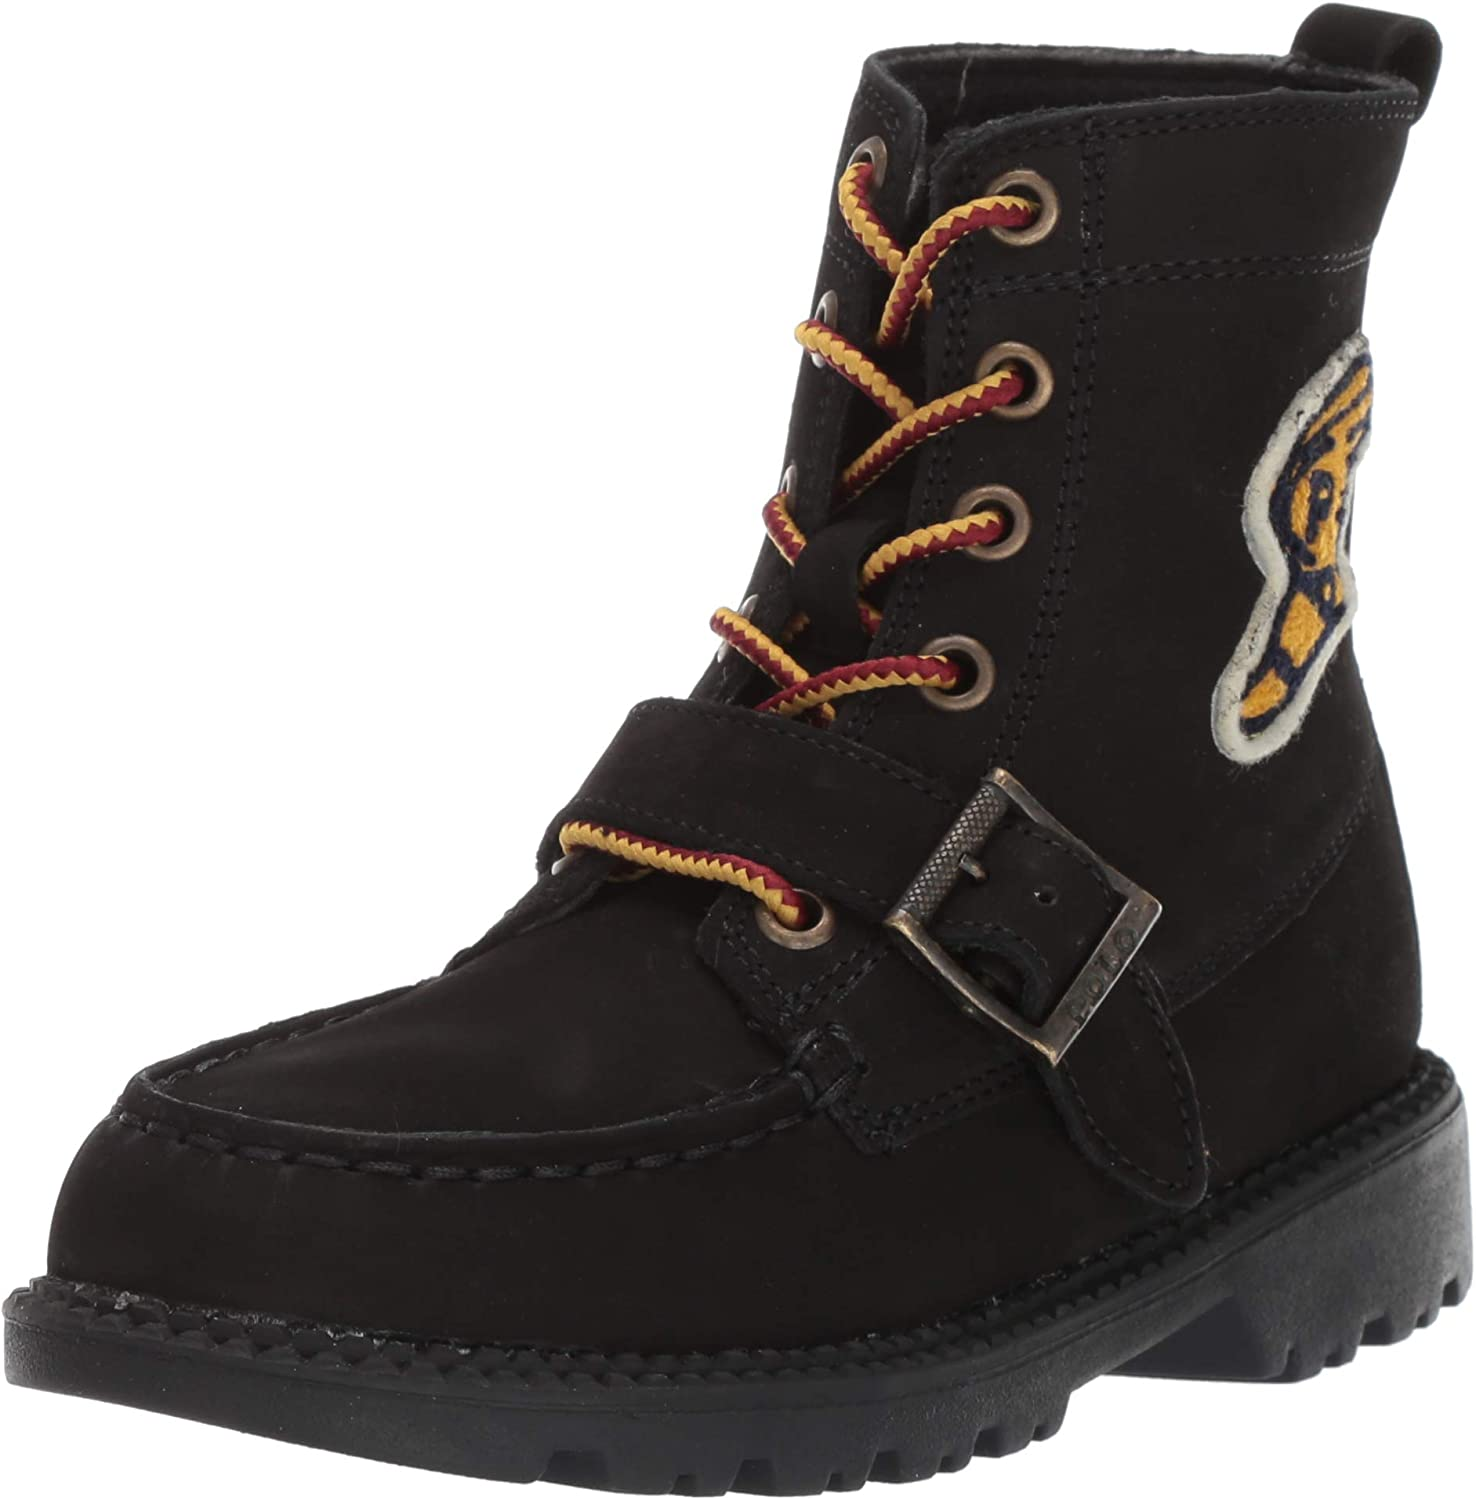 Polo Ralph Lauren Unisex-Child Ranger New Courier shipping free shipping arrival Fashion Hi Boot Ii